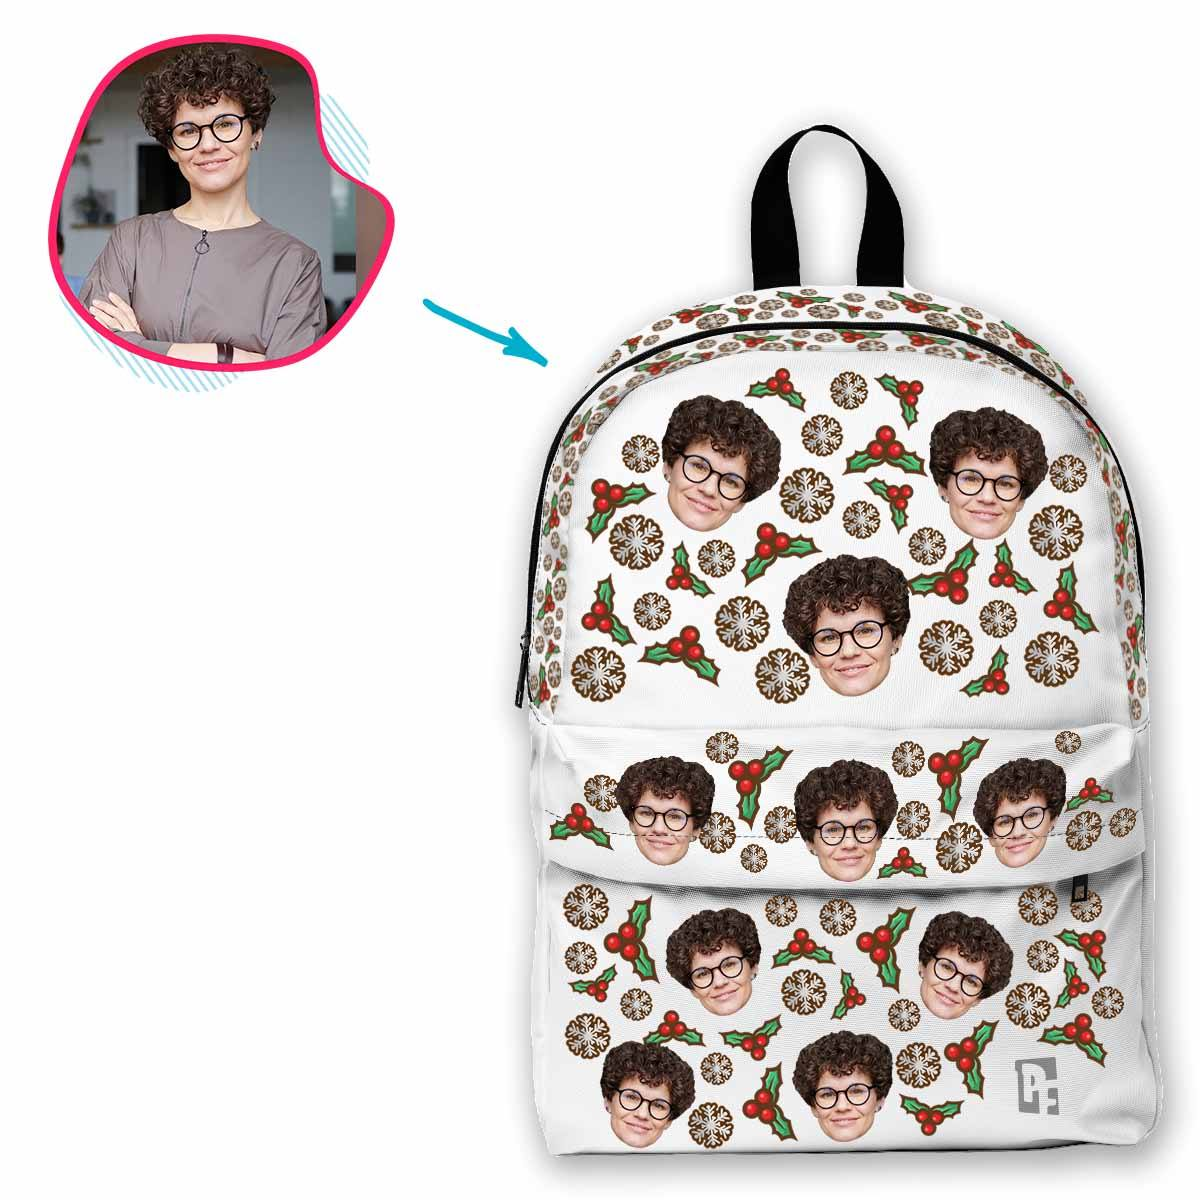 white Mistletoe classic backpack personalized with photo of face printed on it